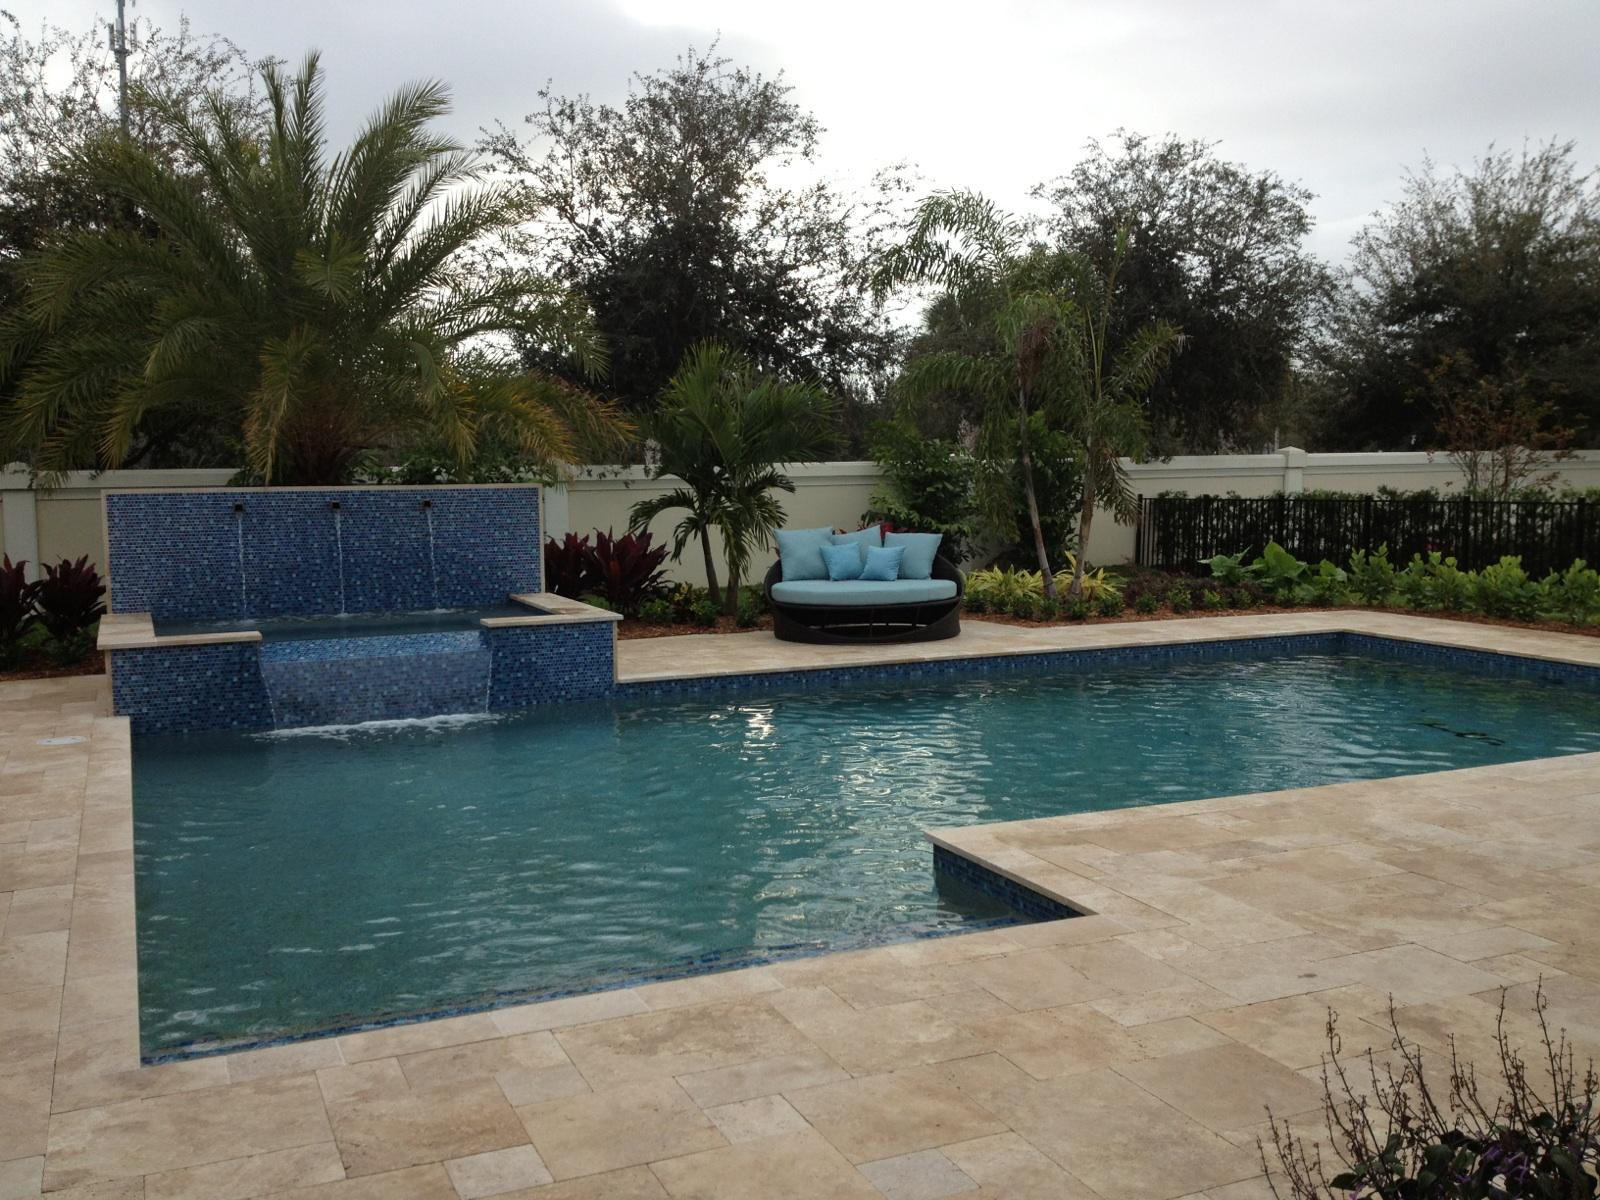 rhr pools of jupiter fl raised spa with raised wall and water features